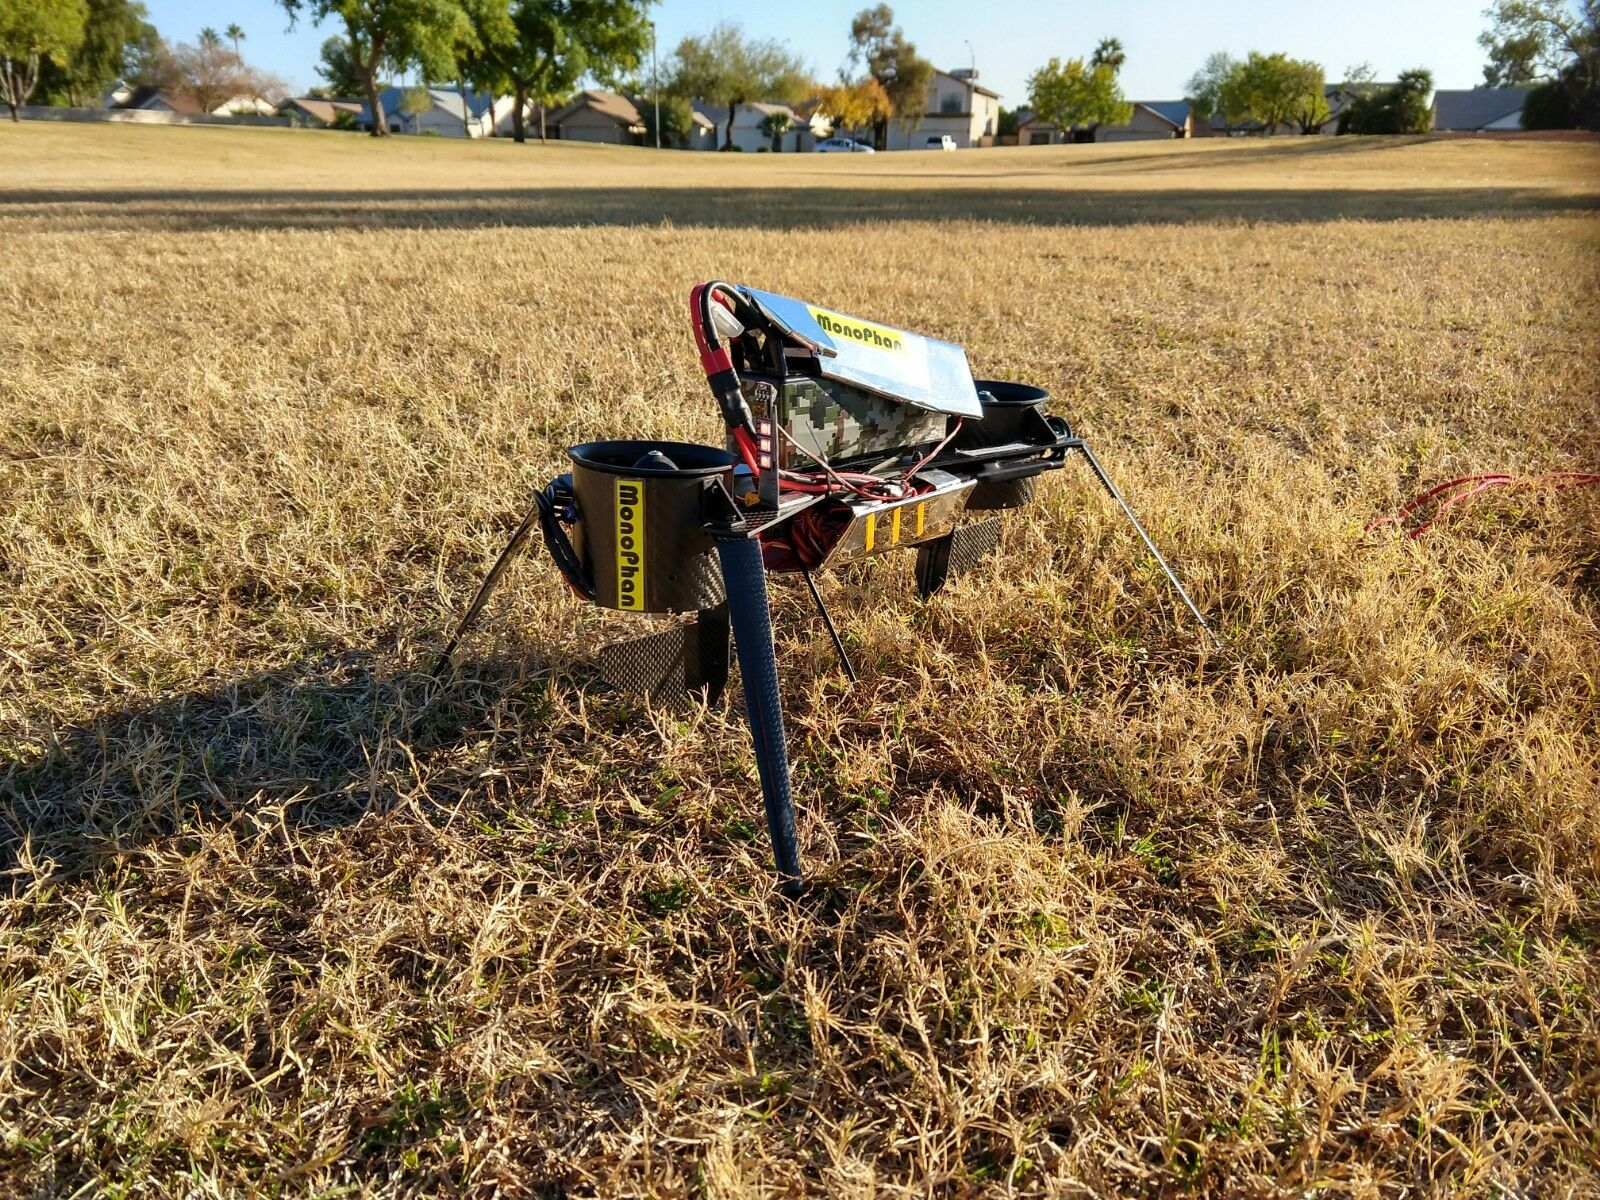 MONOPHAN MOTOPHAN MOTOBOT HOVERBIKE ProssoOTYPE THRUST VECTORING EDF DRONE-70MMEDF